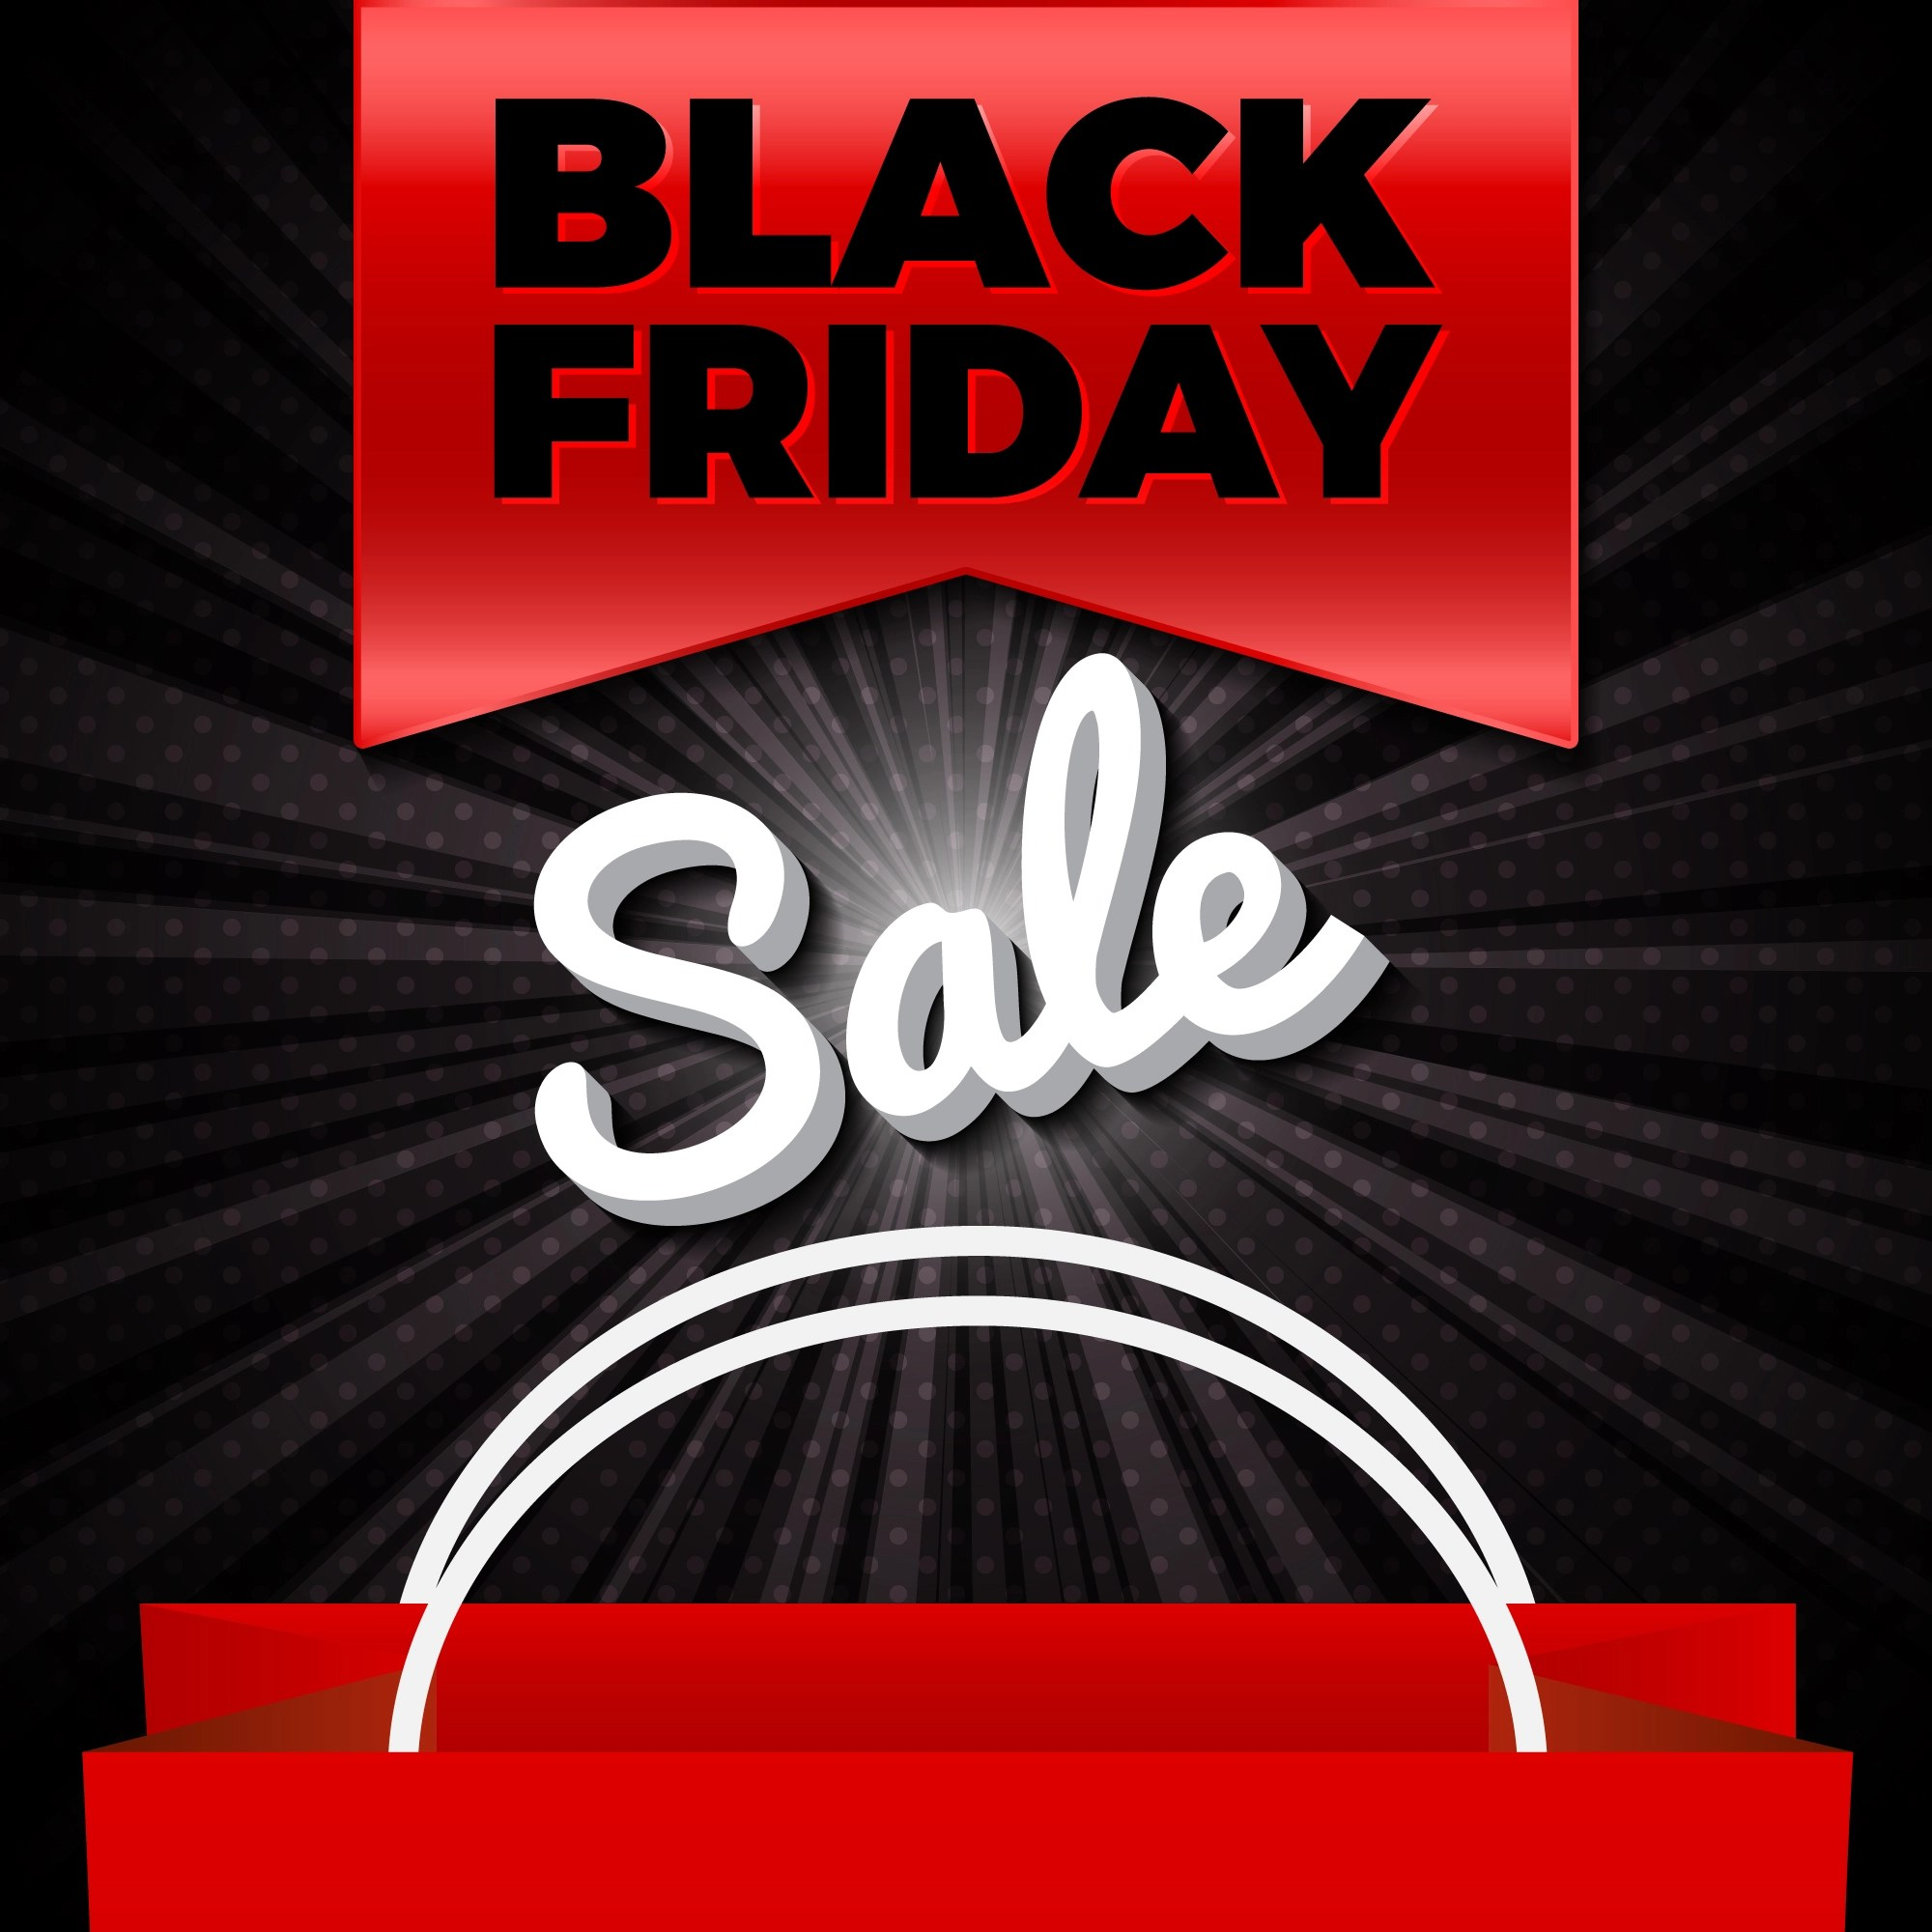 Friday Sale Black Friday Sale Download Free Vector Art Stock